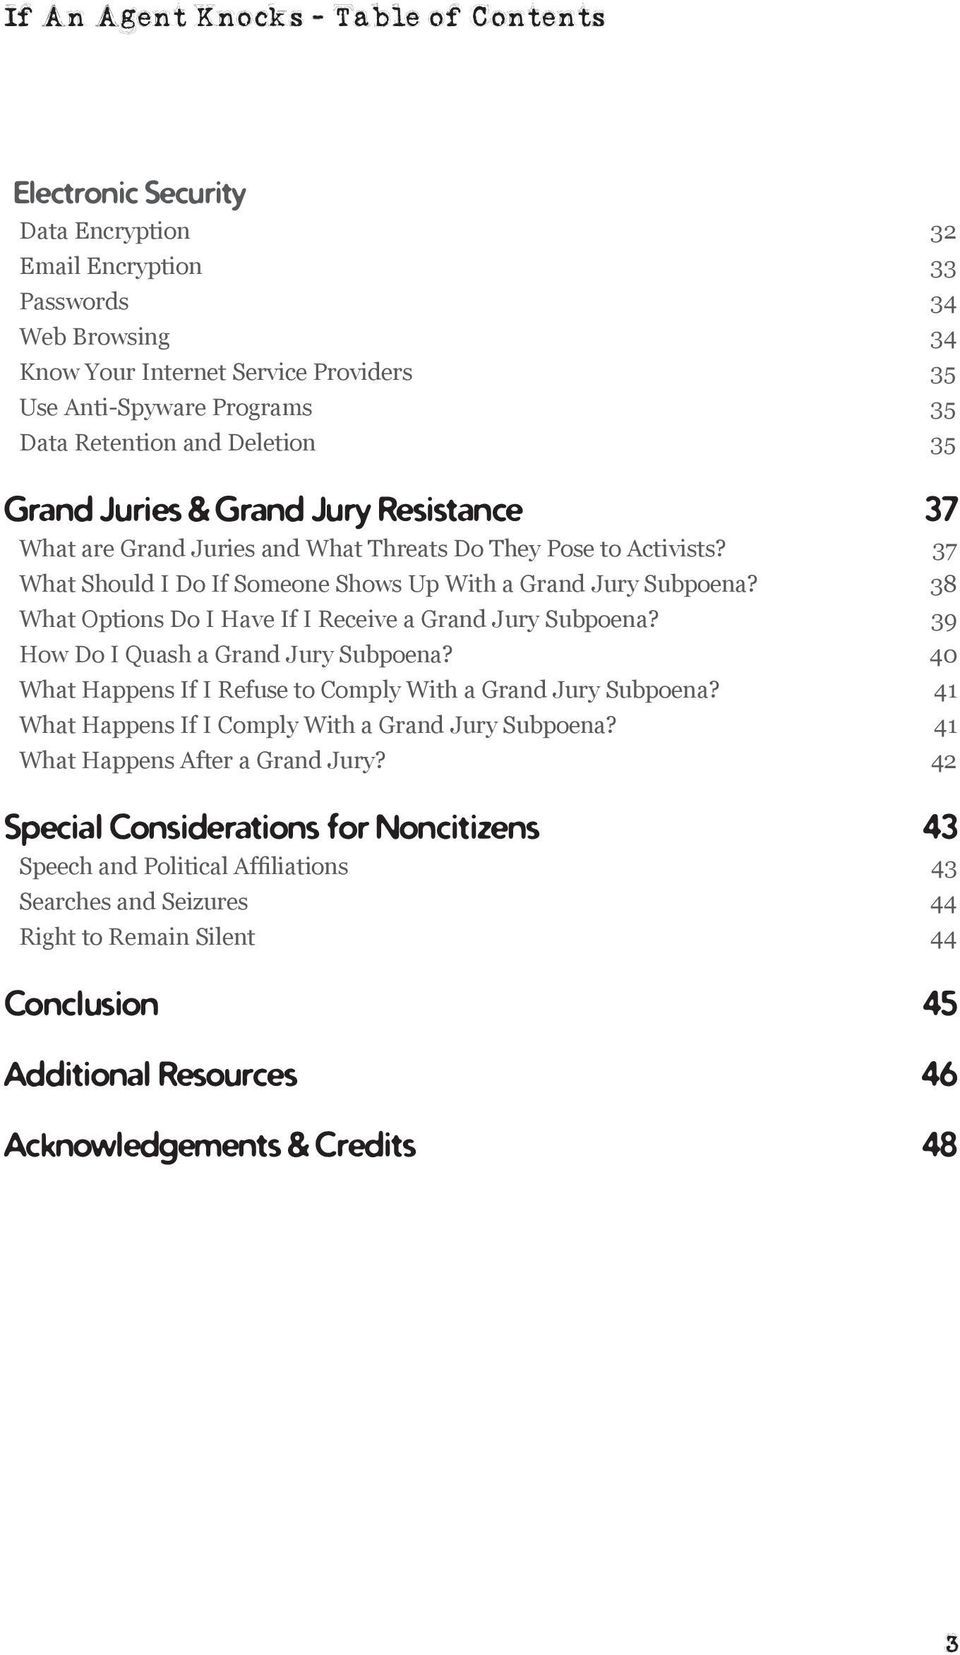 37 What Should I Do If Someone Shows Up With a Grand Jury Subpoena? 38 What Options Do I Have If I Receive a Grand Jury Subpoena? 39 How Do I Quash a Grand Jury Subpoena?